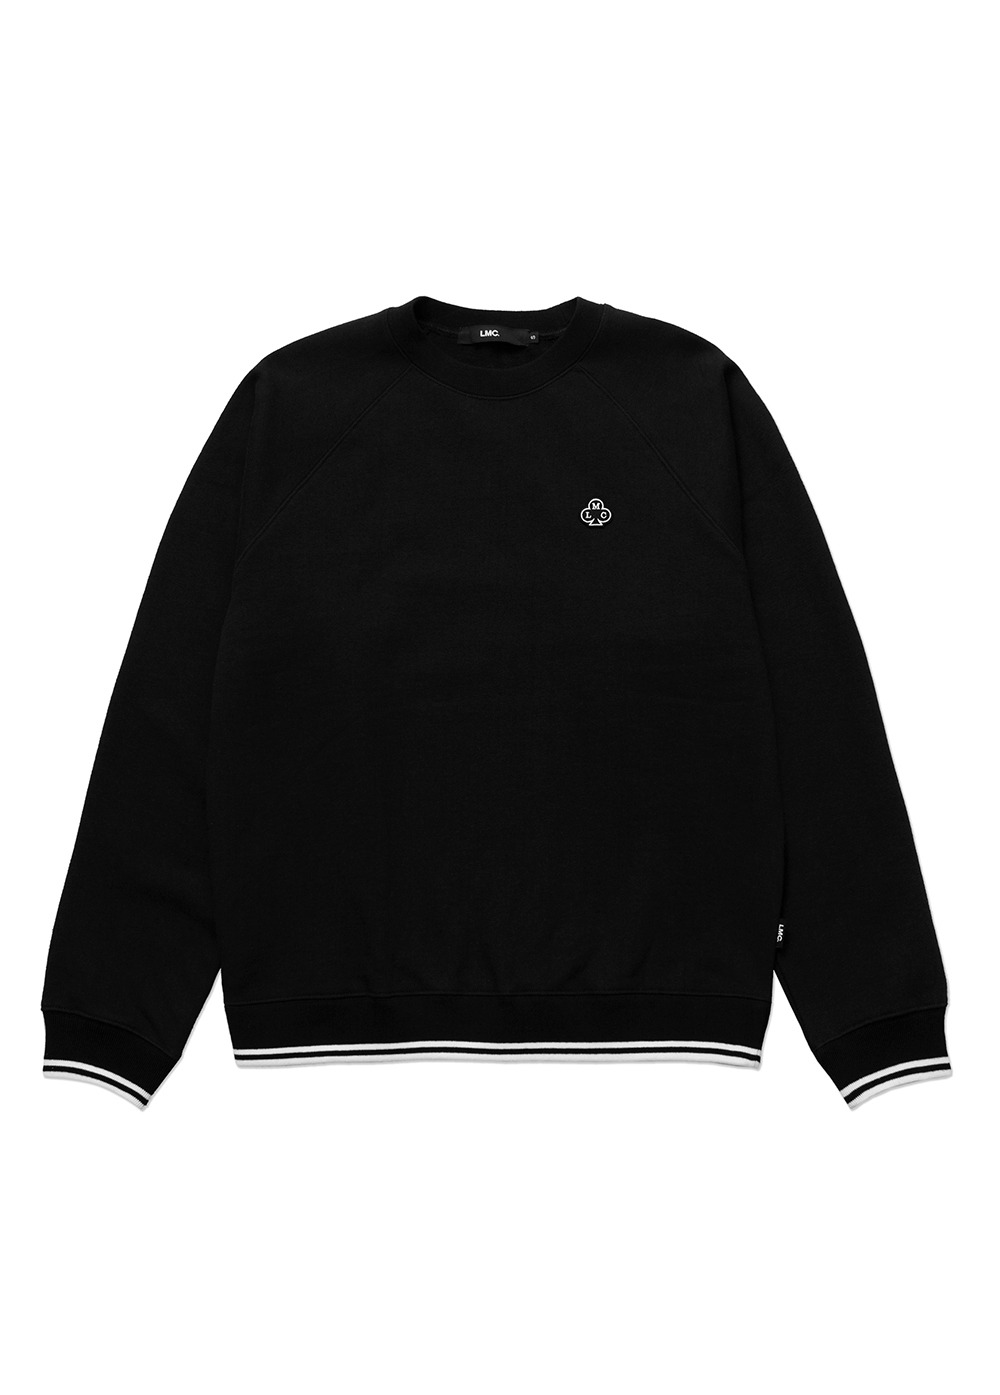 LMC CLUB BASIC RAGLAN SWEATSHIRT black